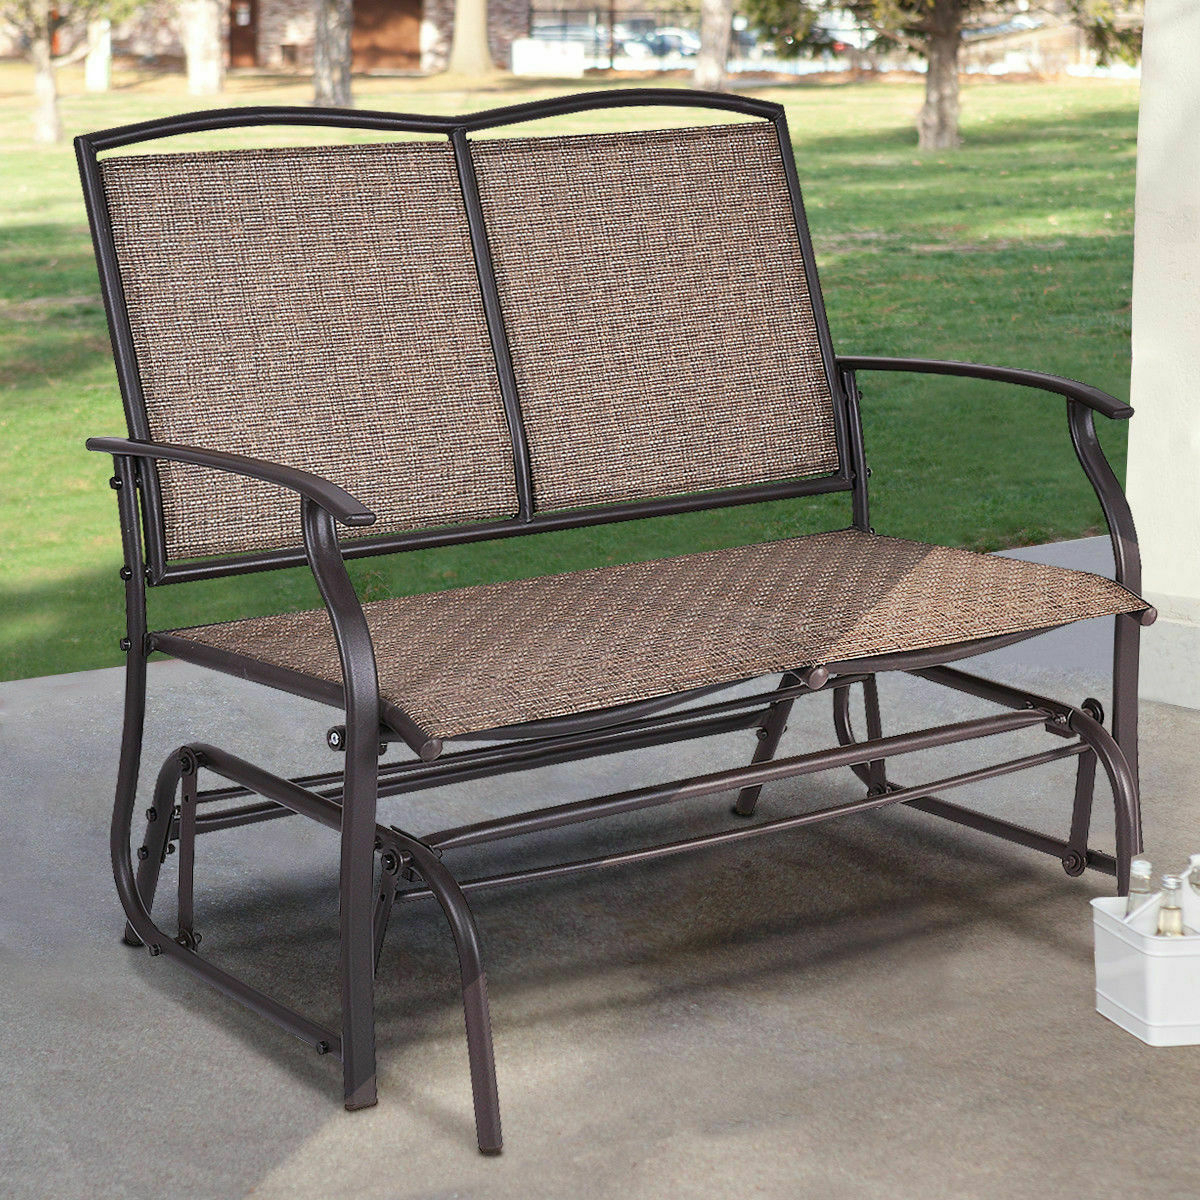 Patio Glider Rocking Bench Double 2 Person Chair Loveseat Armchair Backyard  New In Double Glider Loveseats (Image 22 of 25)